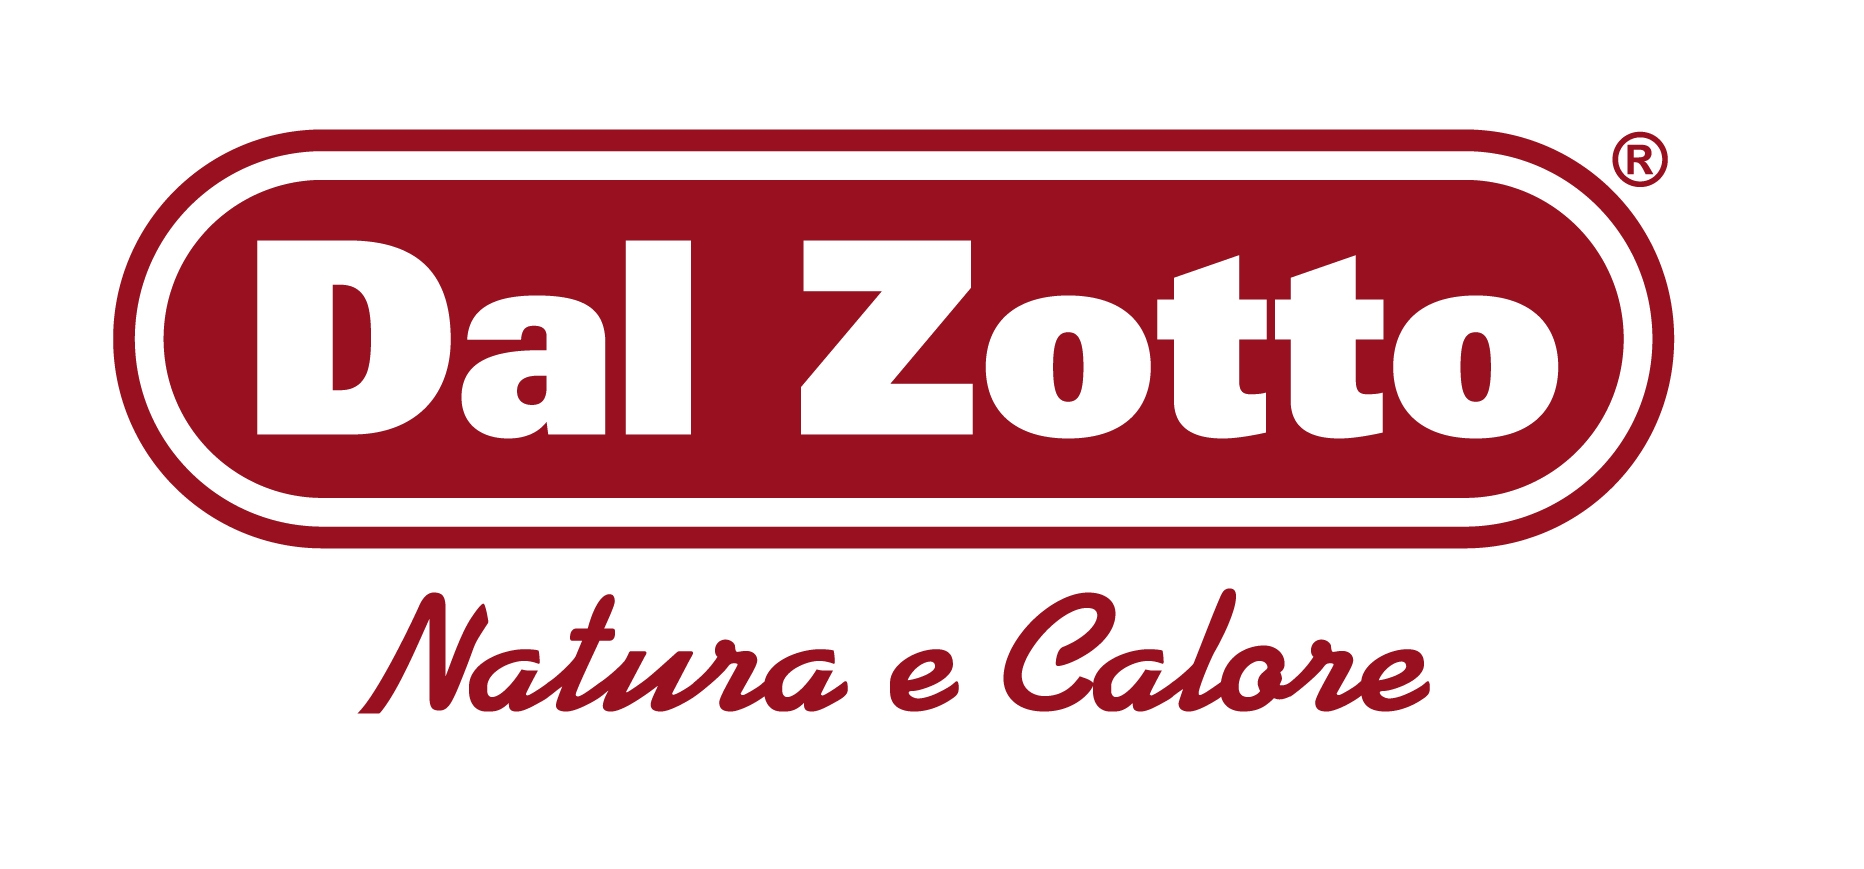 Search results for stufe a pellet del zotto black for Dal zotto stefy